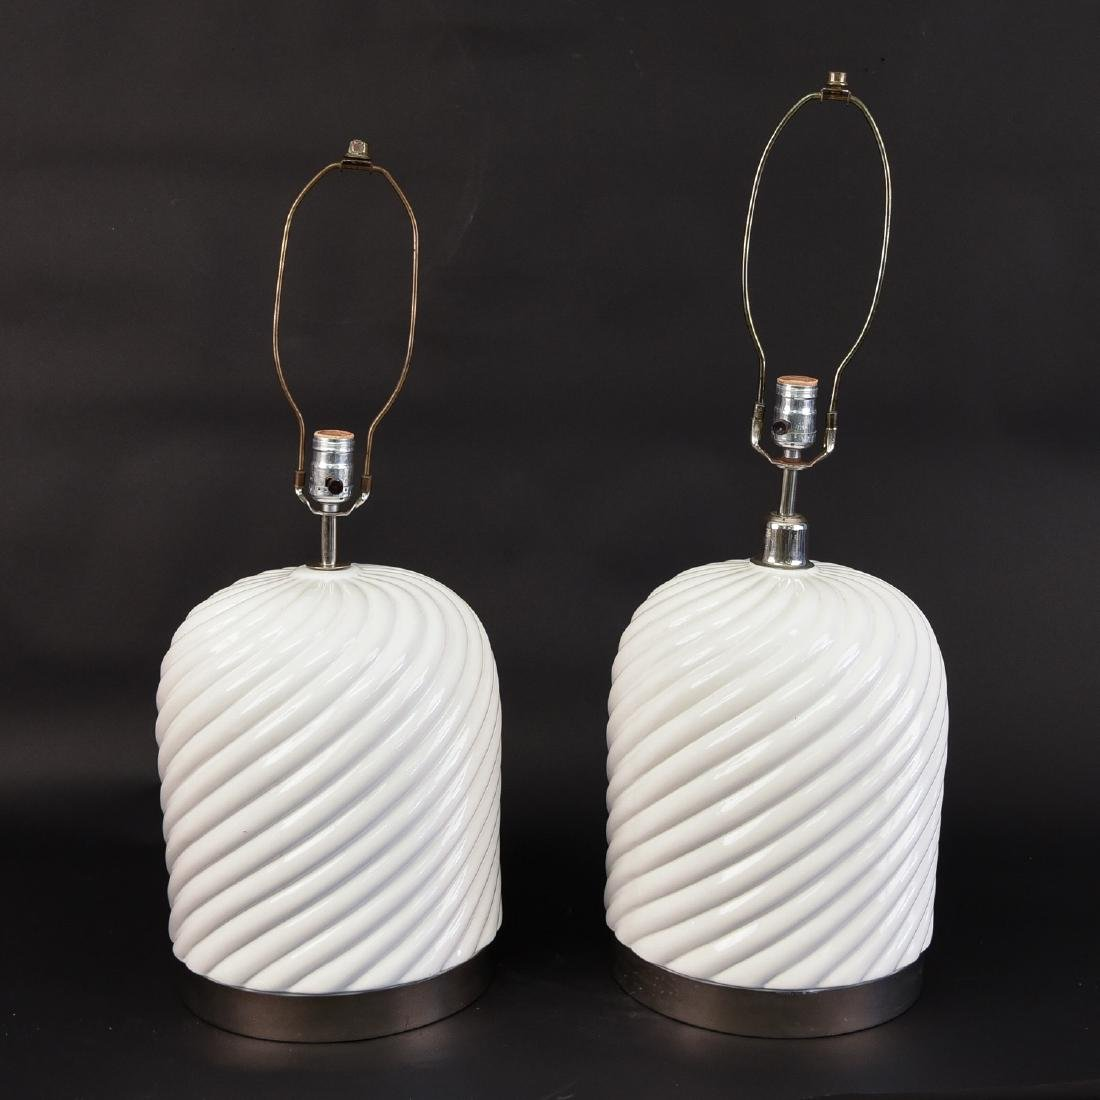 PAIR OF TOMMASO BARBI CERAMIC LAMPS